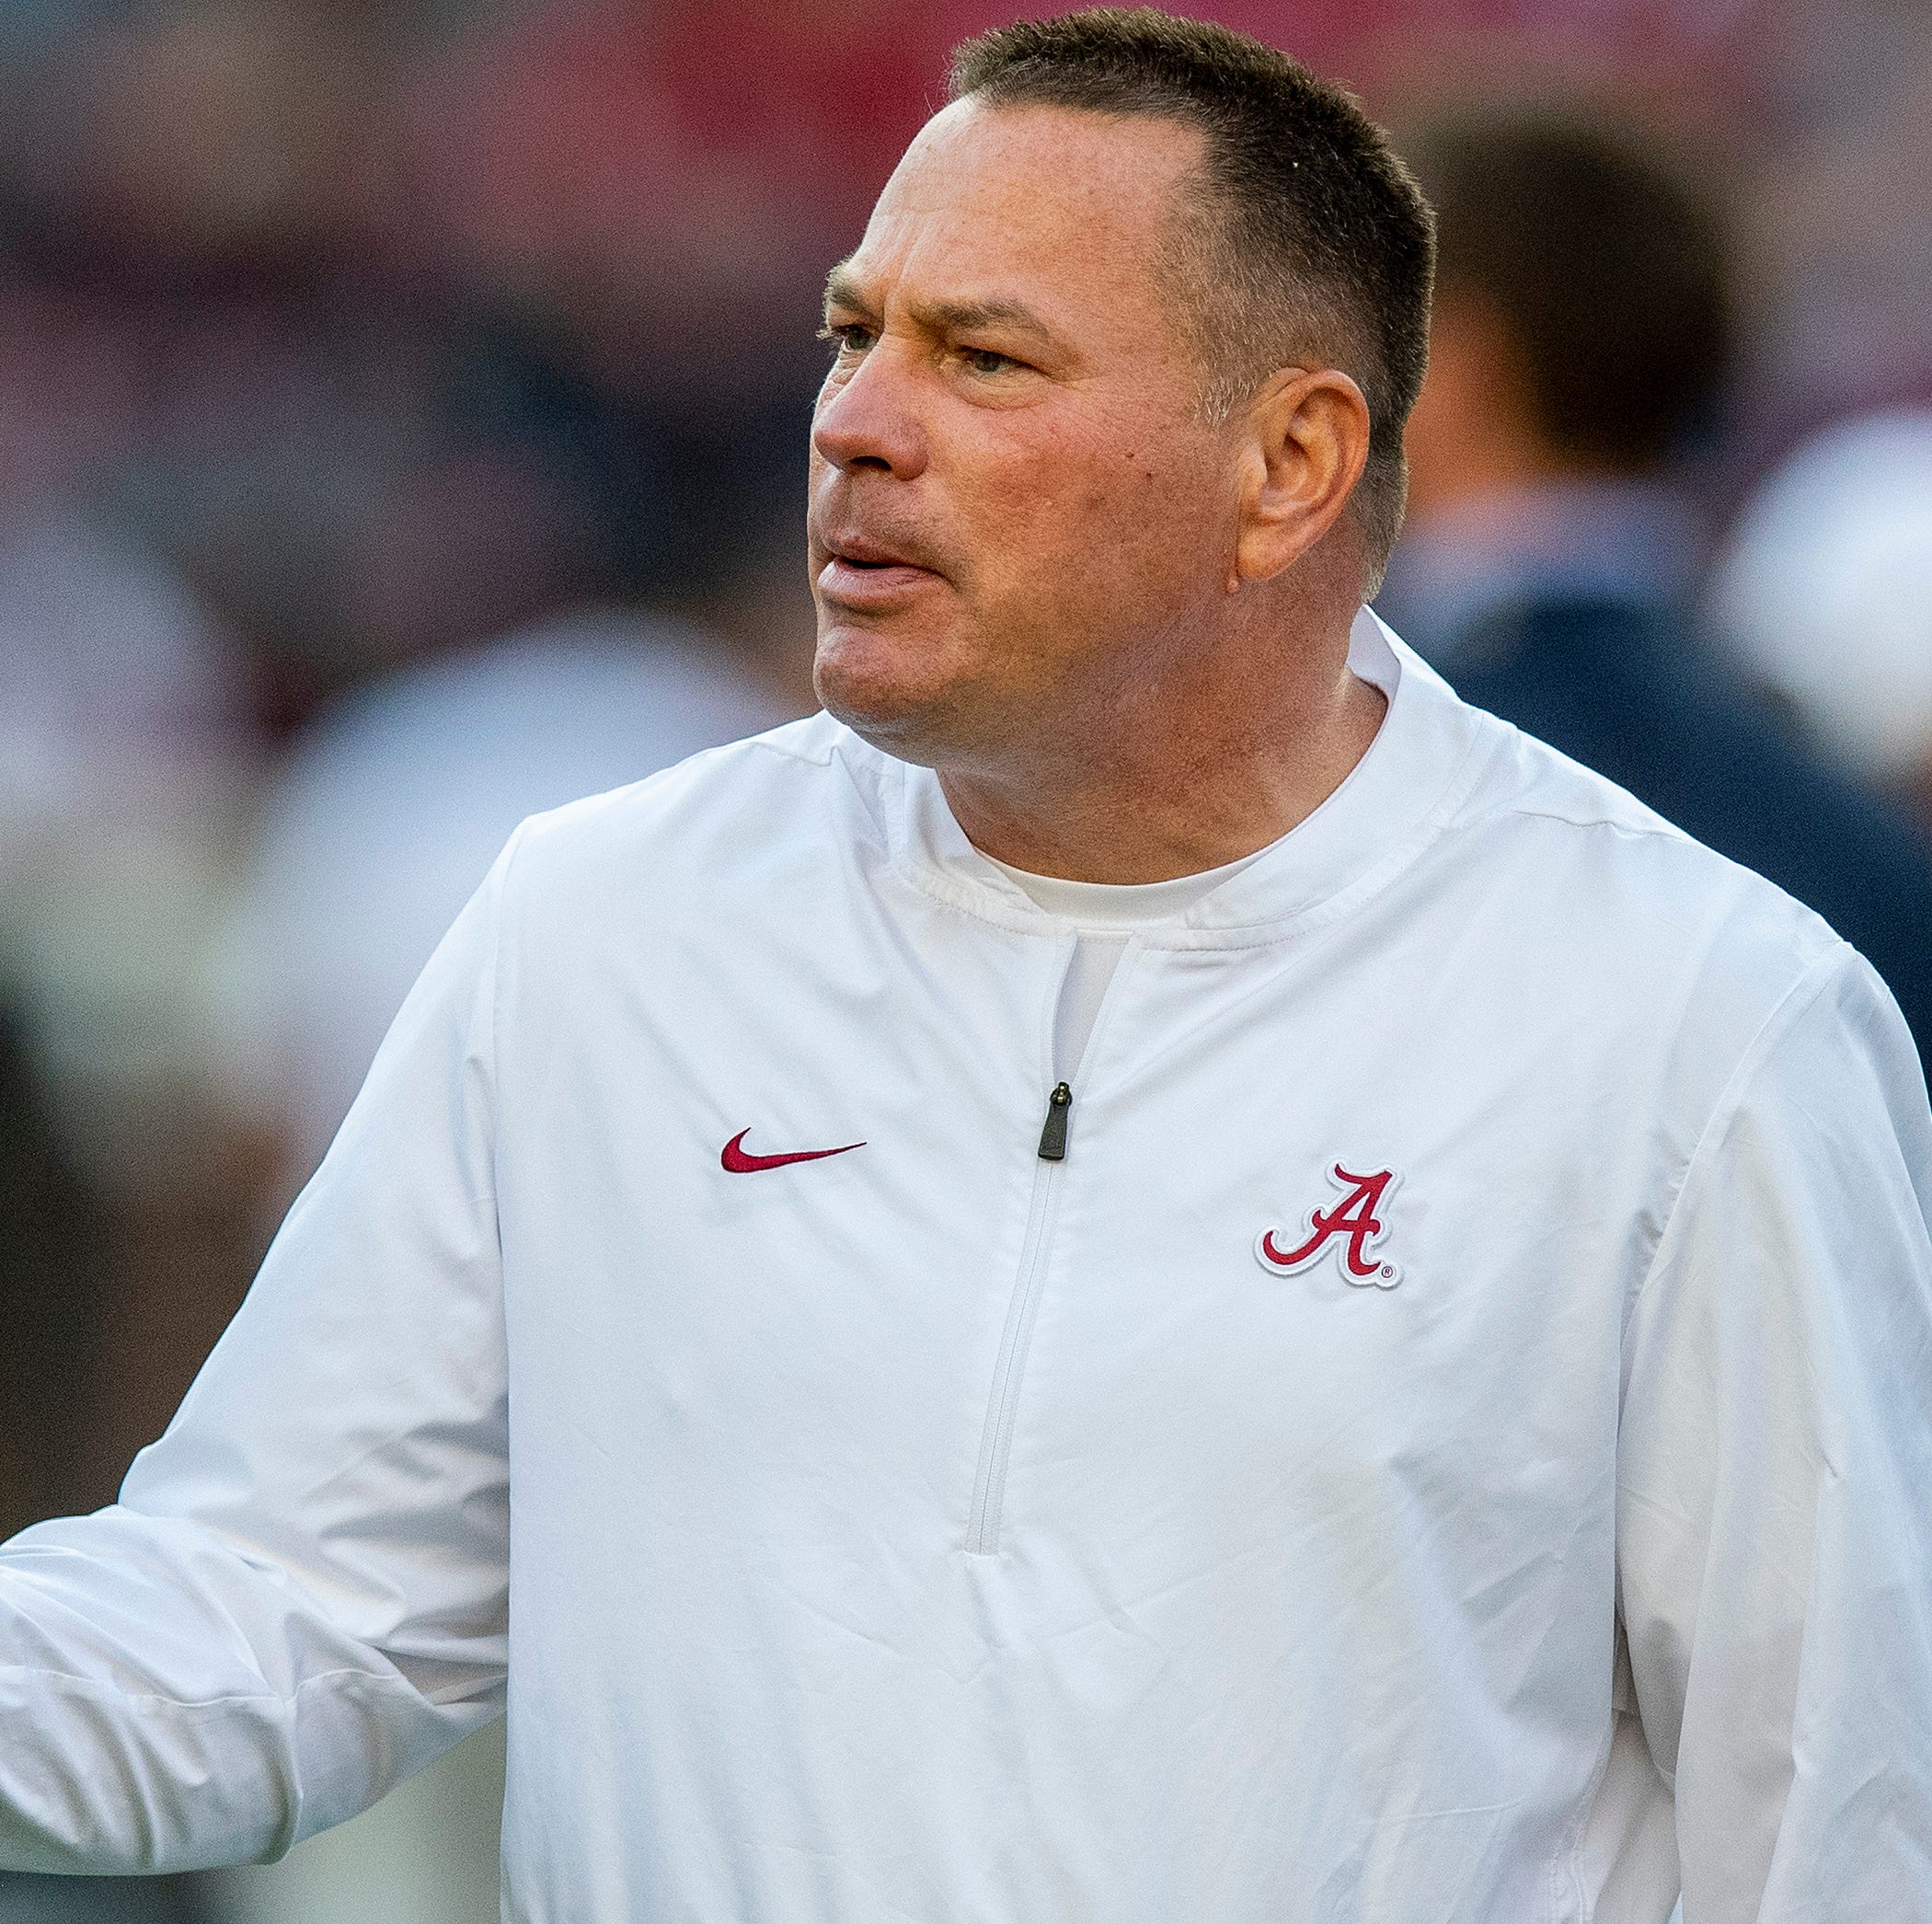 Alabama players want Butch Jones to celebrate with a cigar after game vs. UT Vols